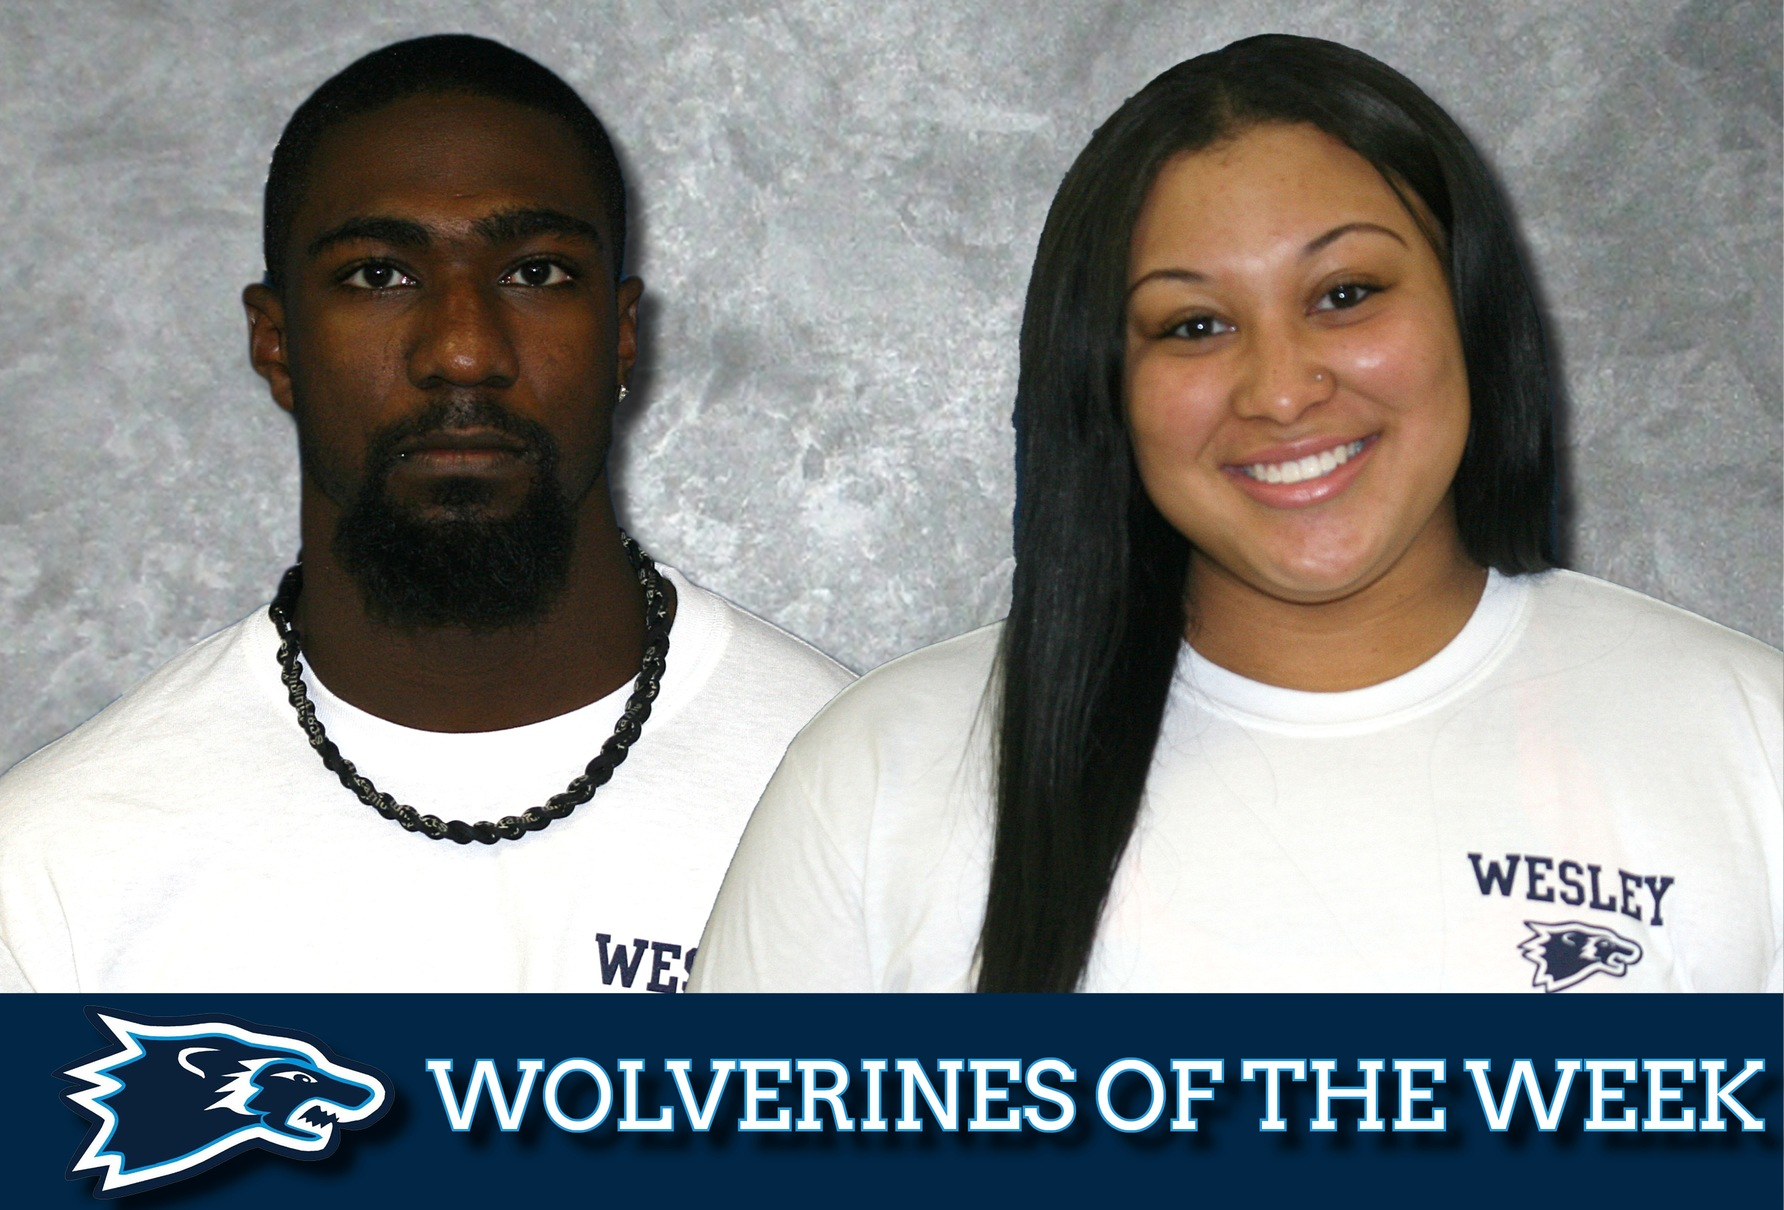 Taylor, Beverly named Wesley Wolverines of the Week